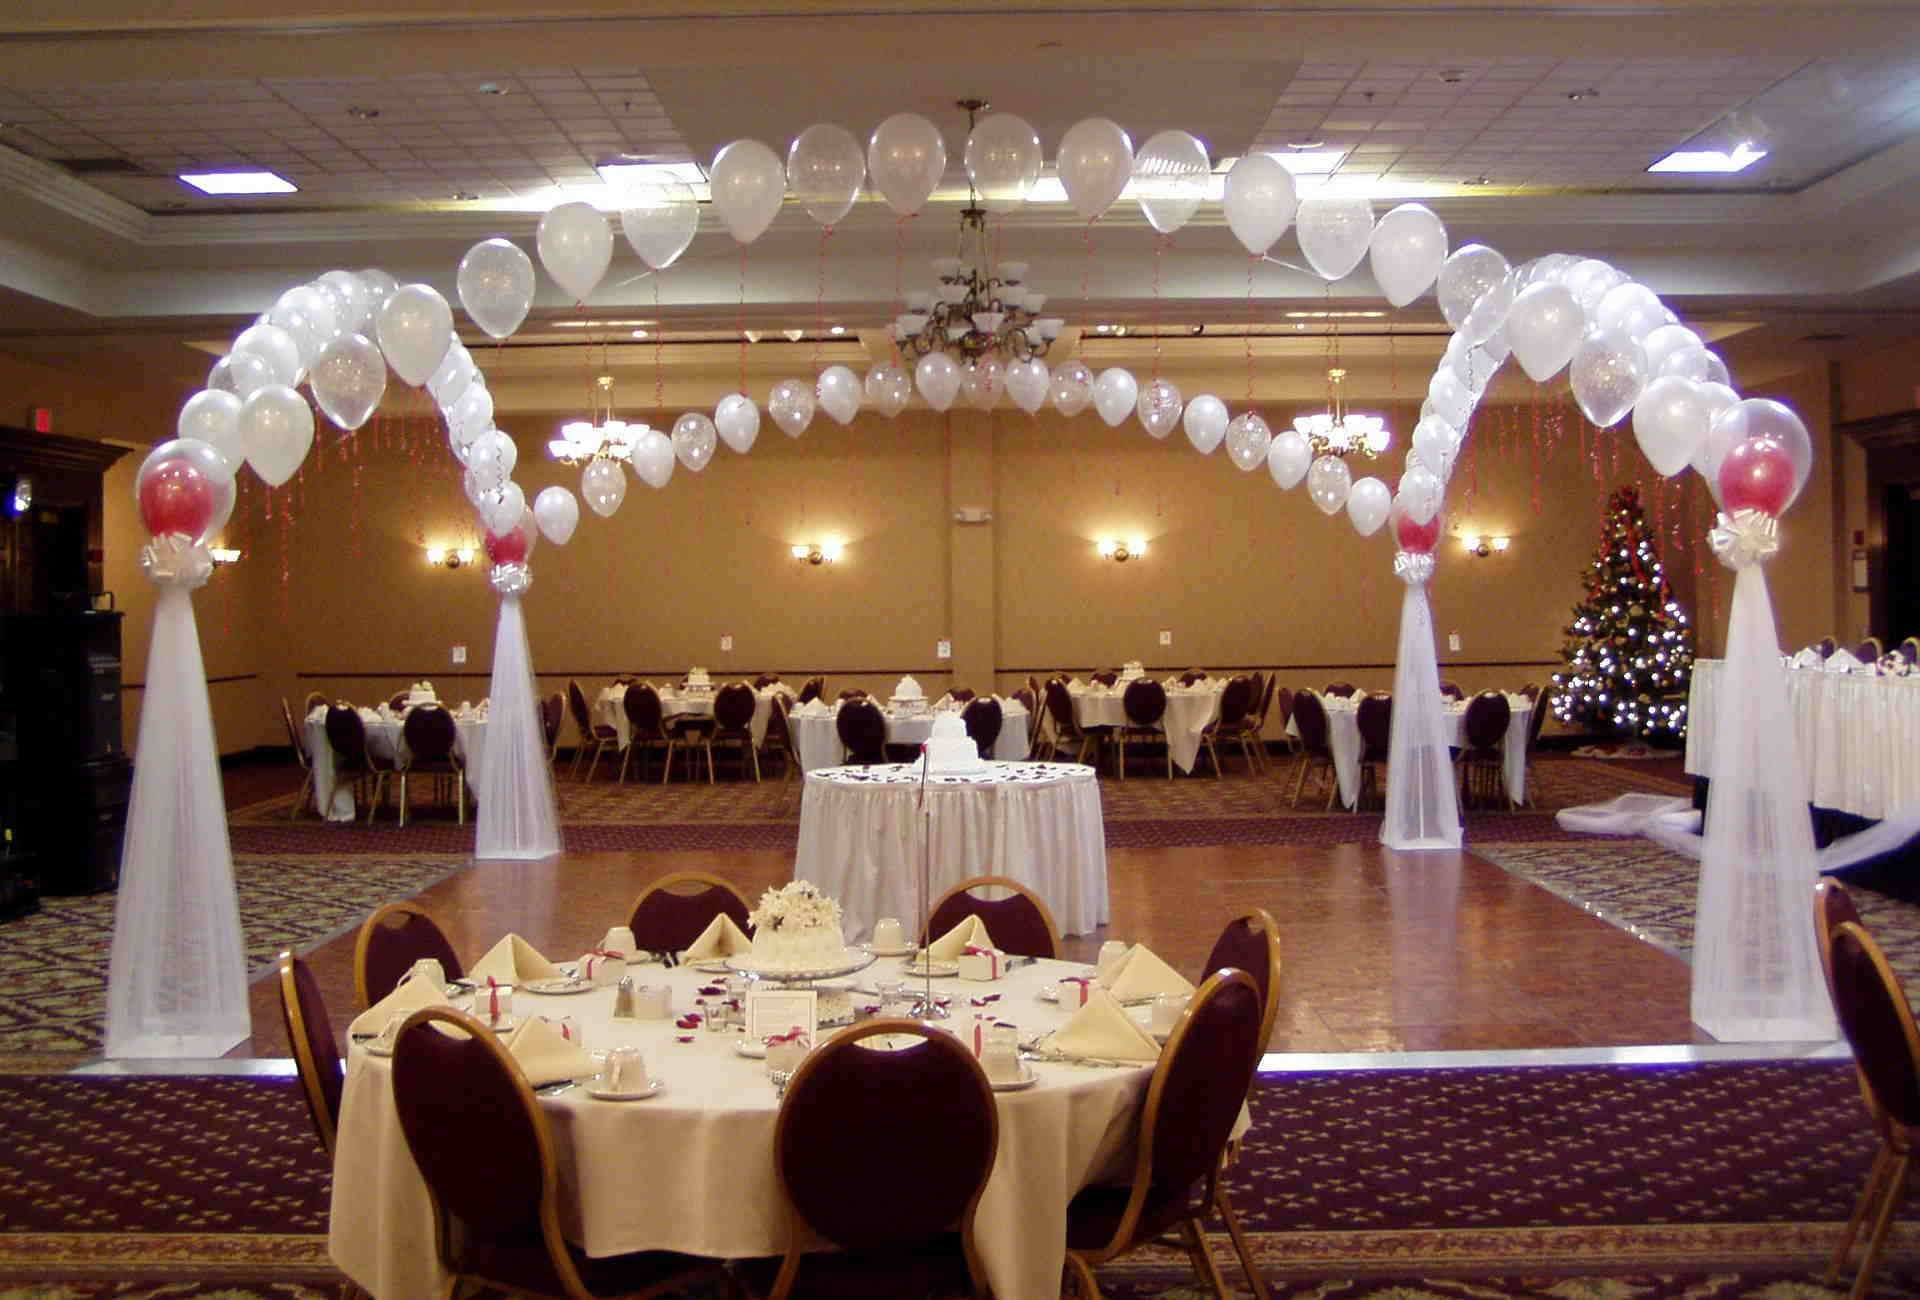 wedding reception venues cost%0A how to decorate a ballroom for a wedding on a budget  Google Search